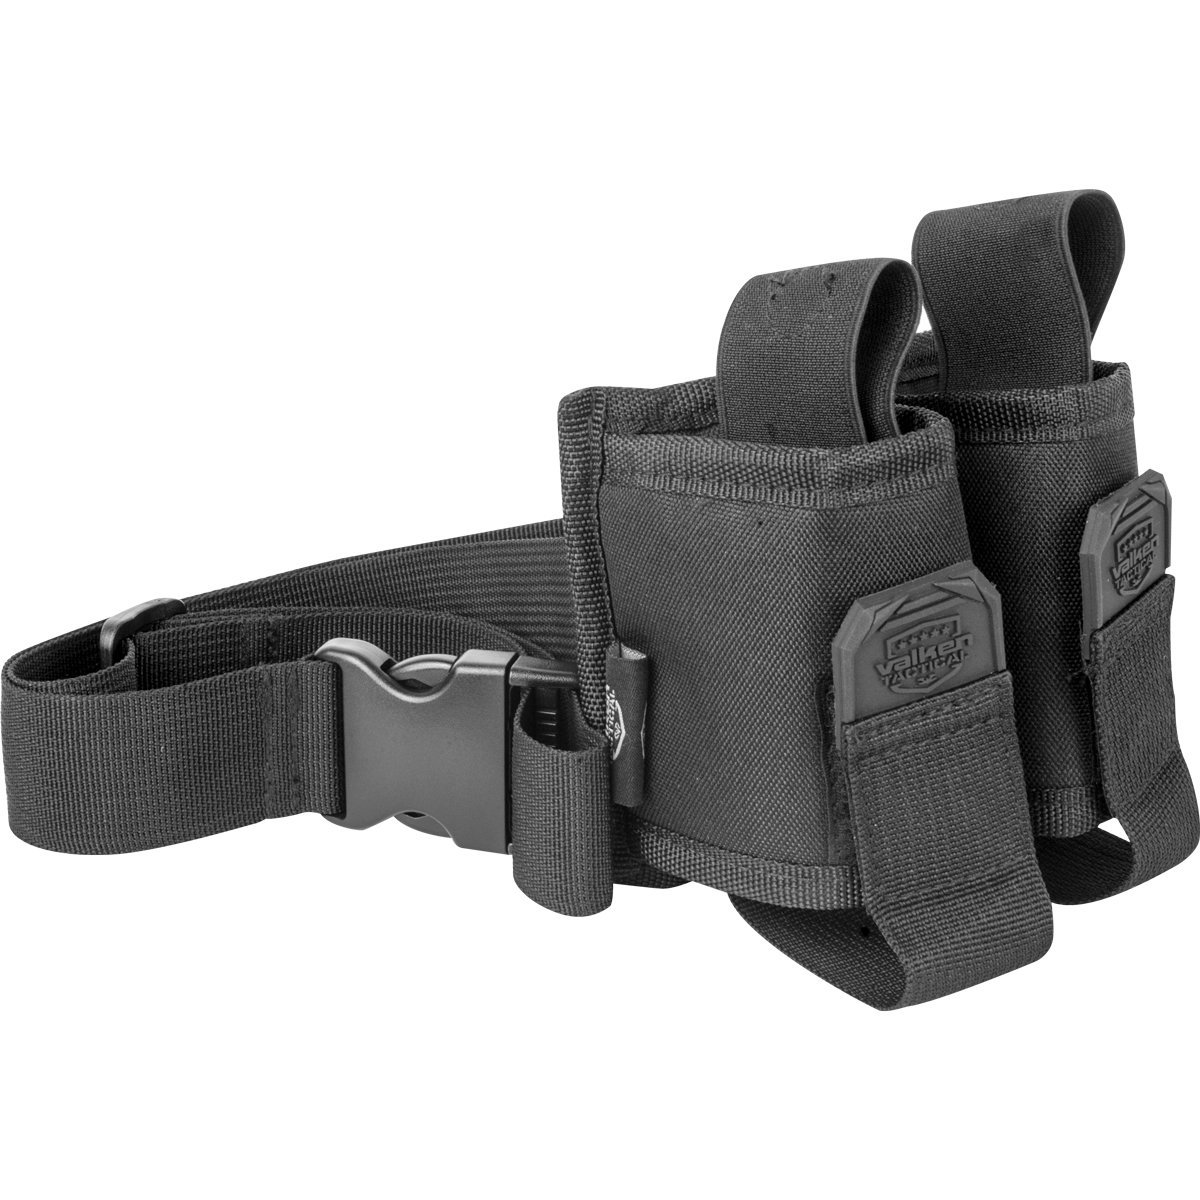 View larger image of GOTCHA Twin Pouch Paintball Harness with Web Belt